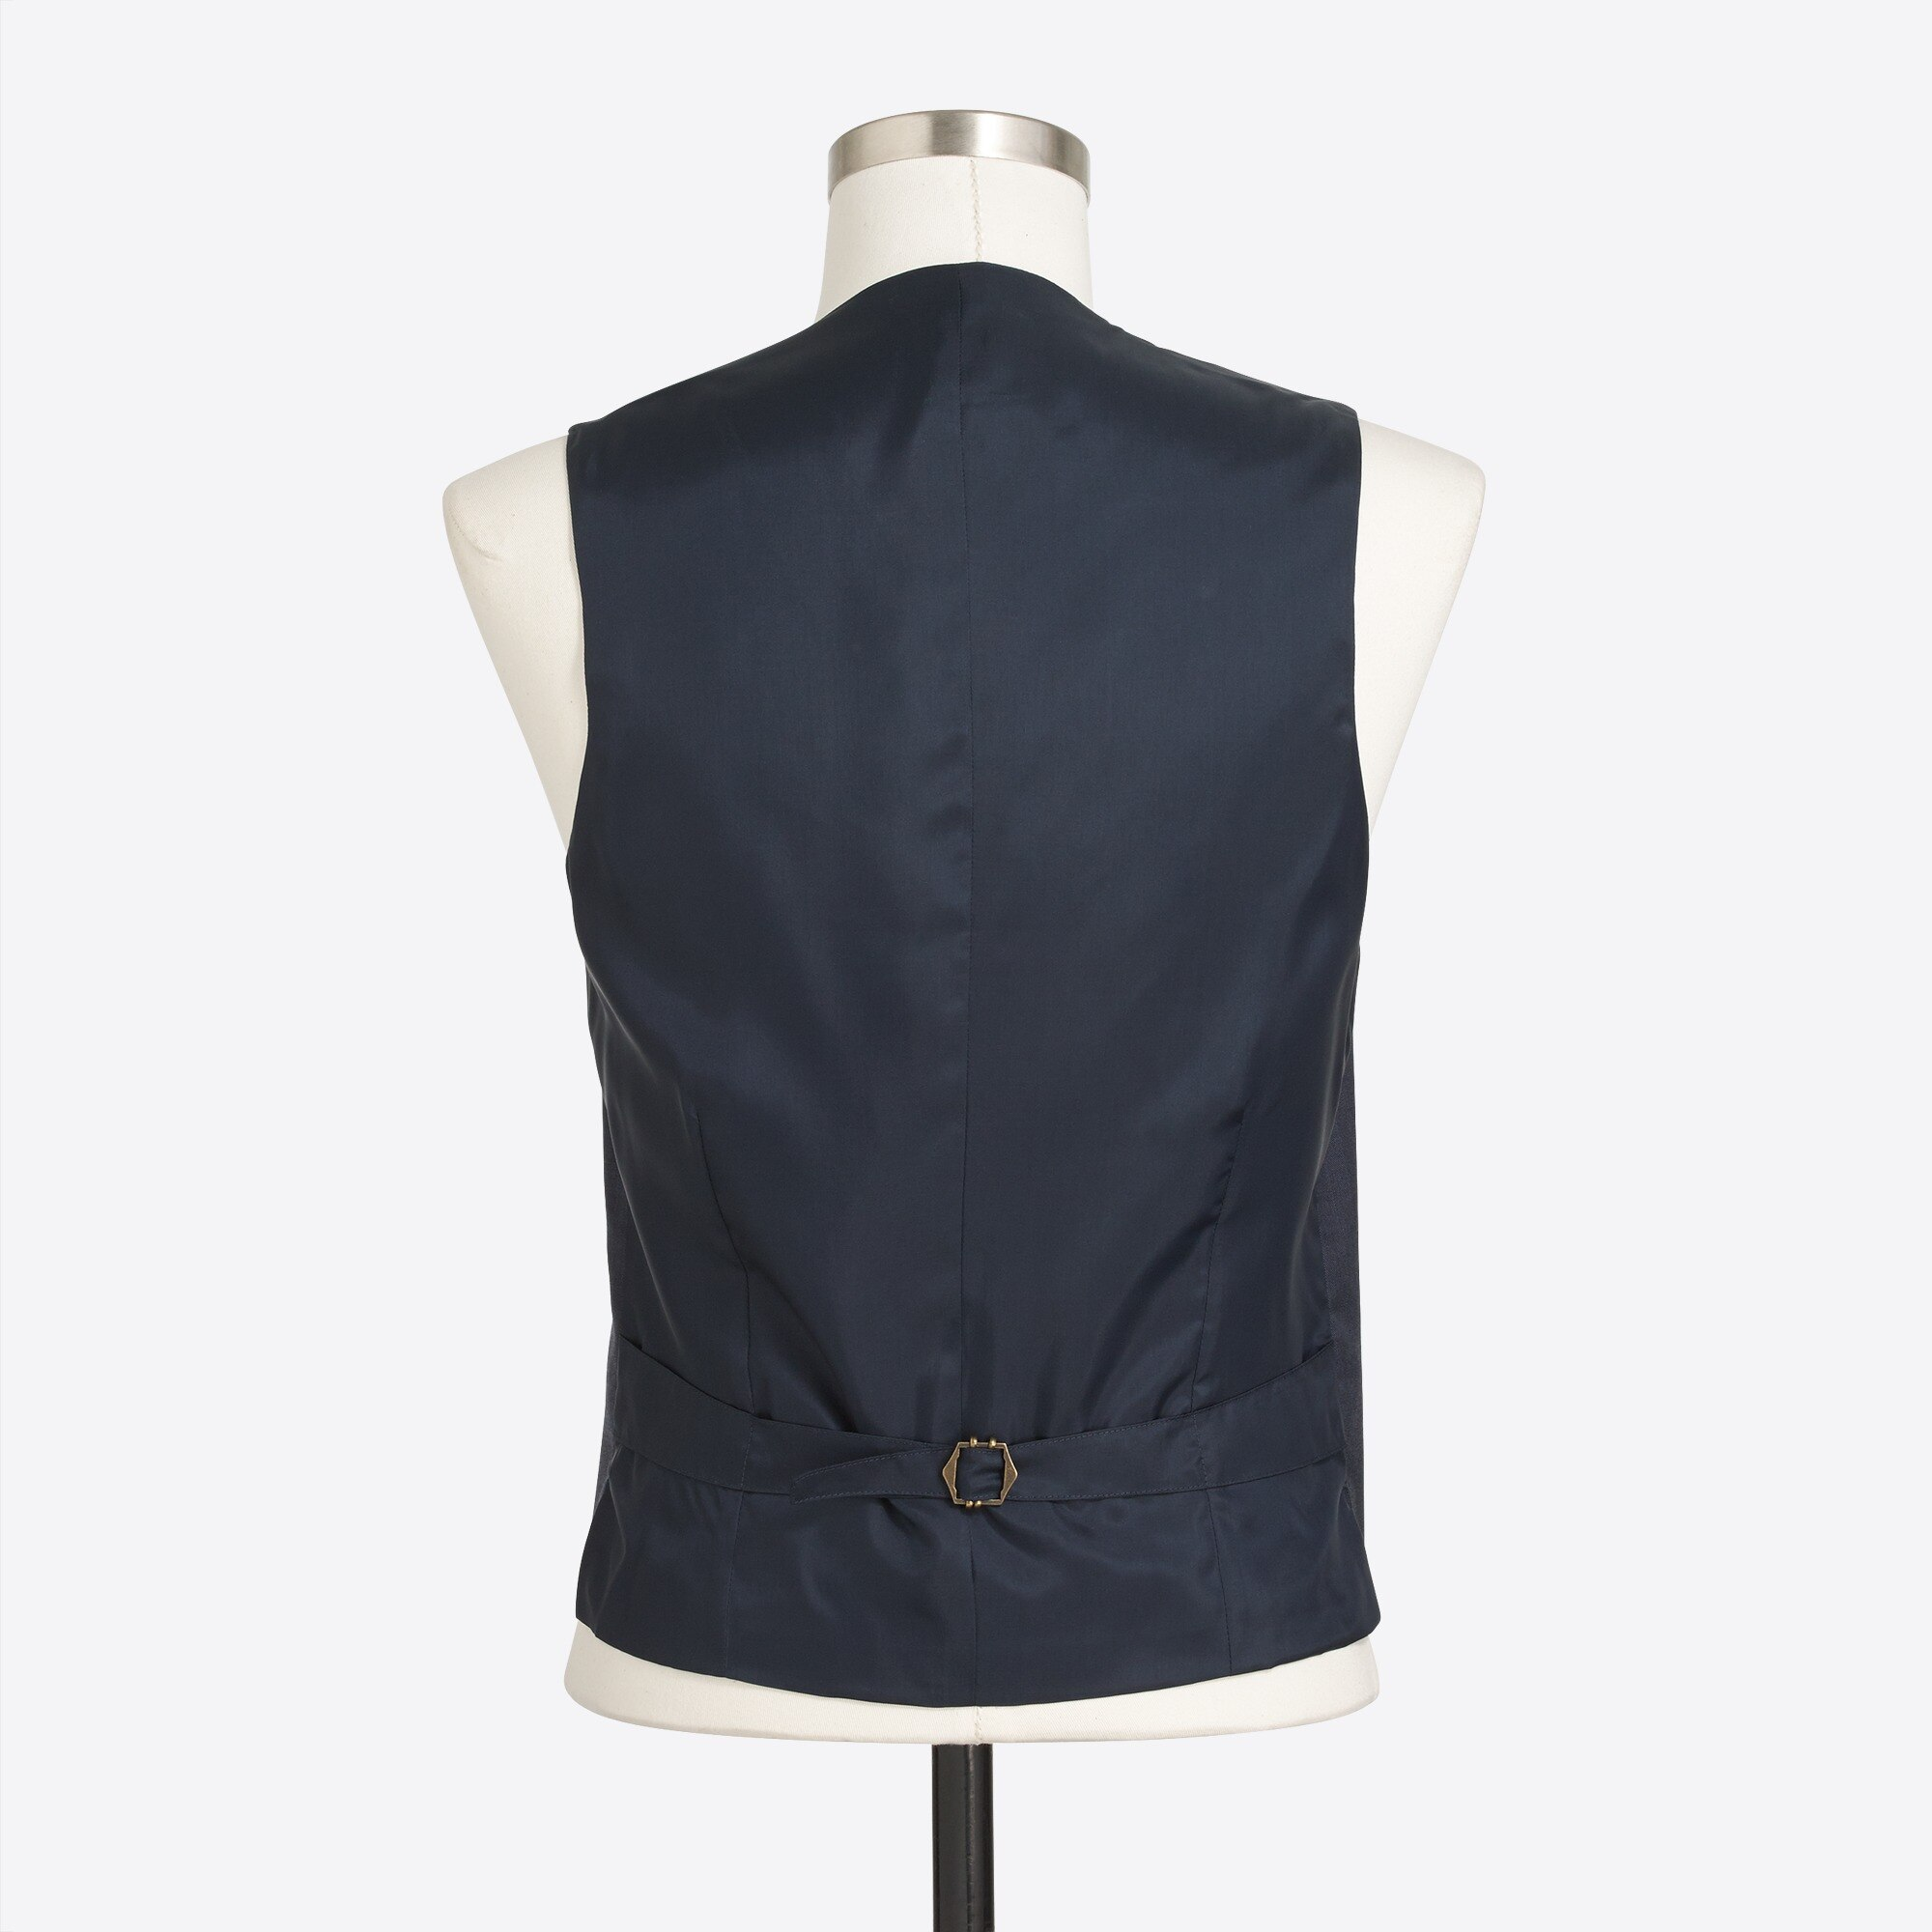 thompson suit vest in worsted wool : factorymen suits